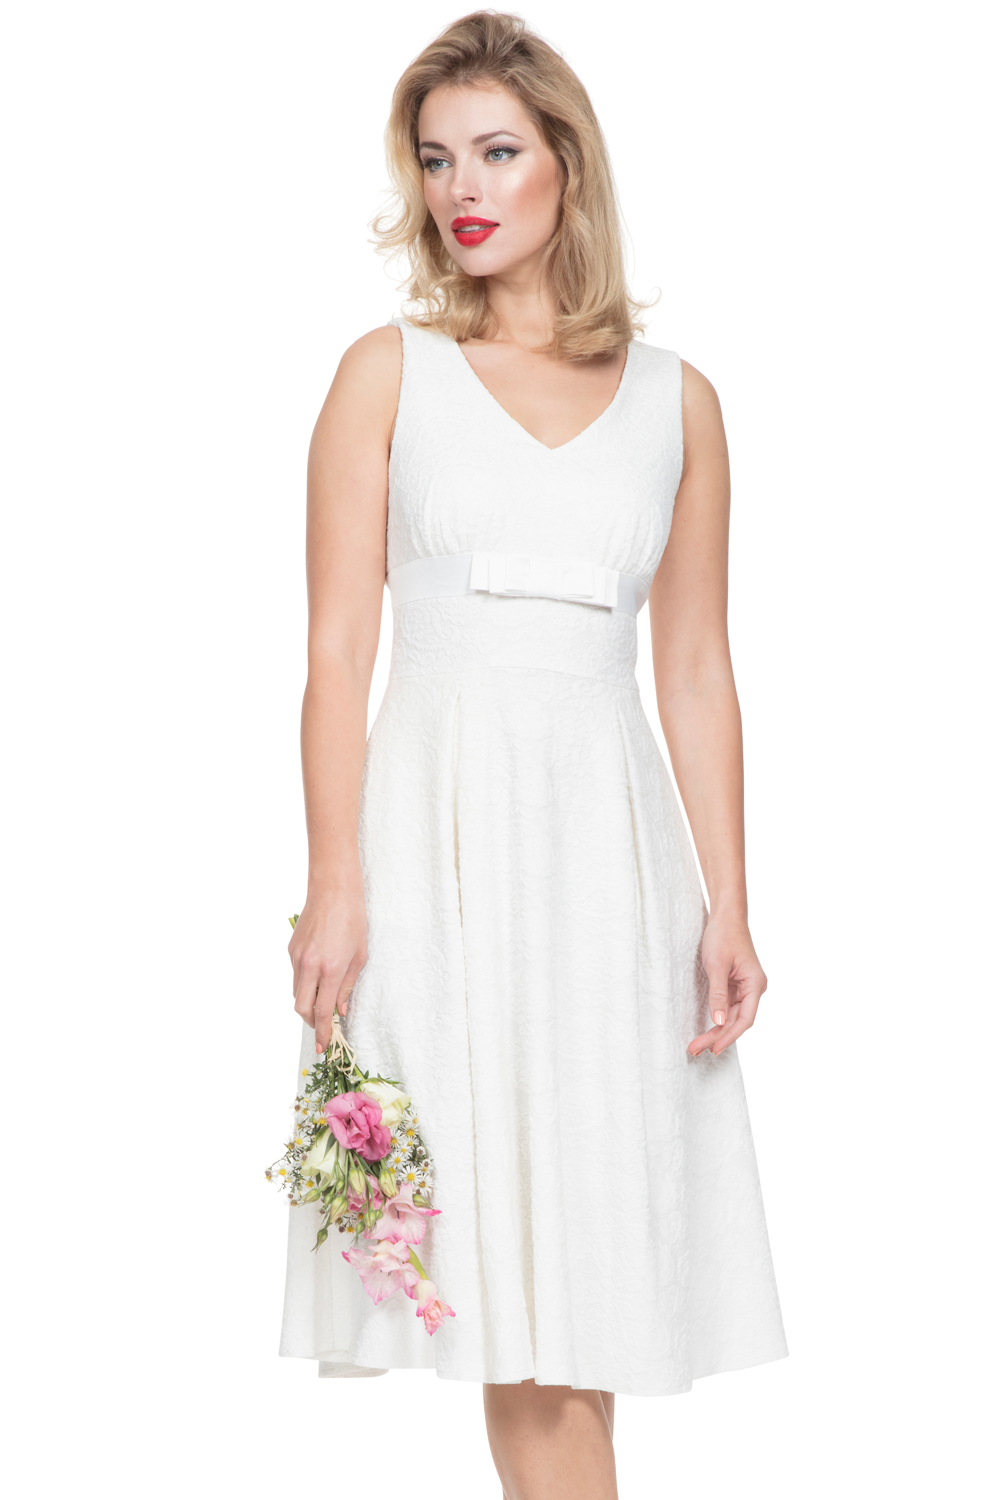 Lauren White Dress Bridal Link